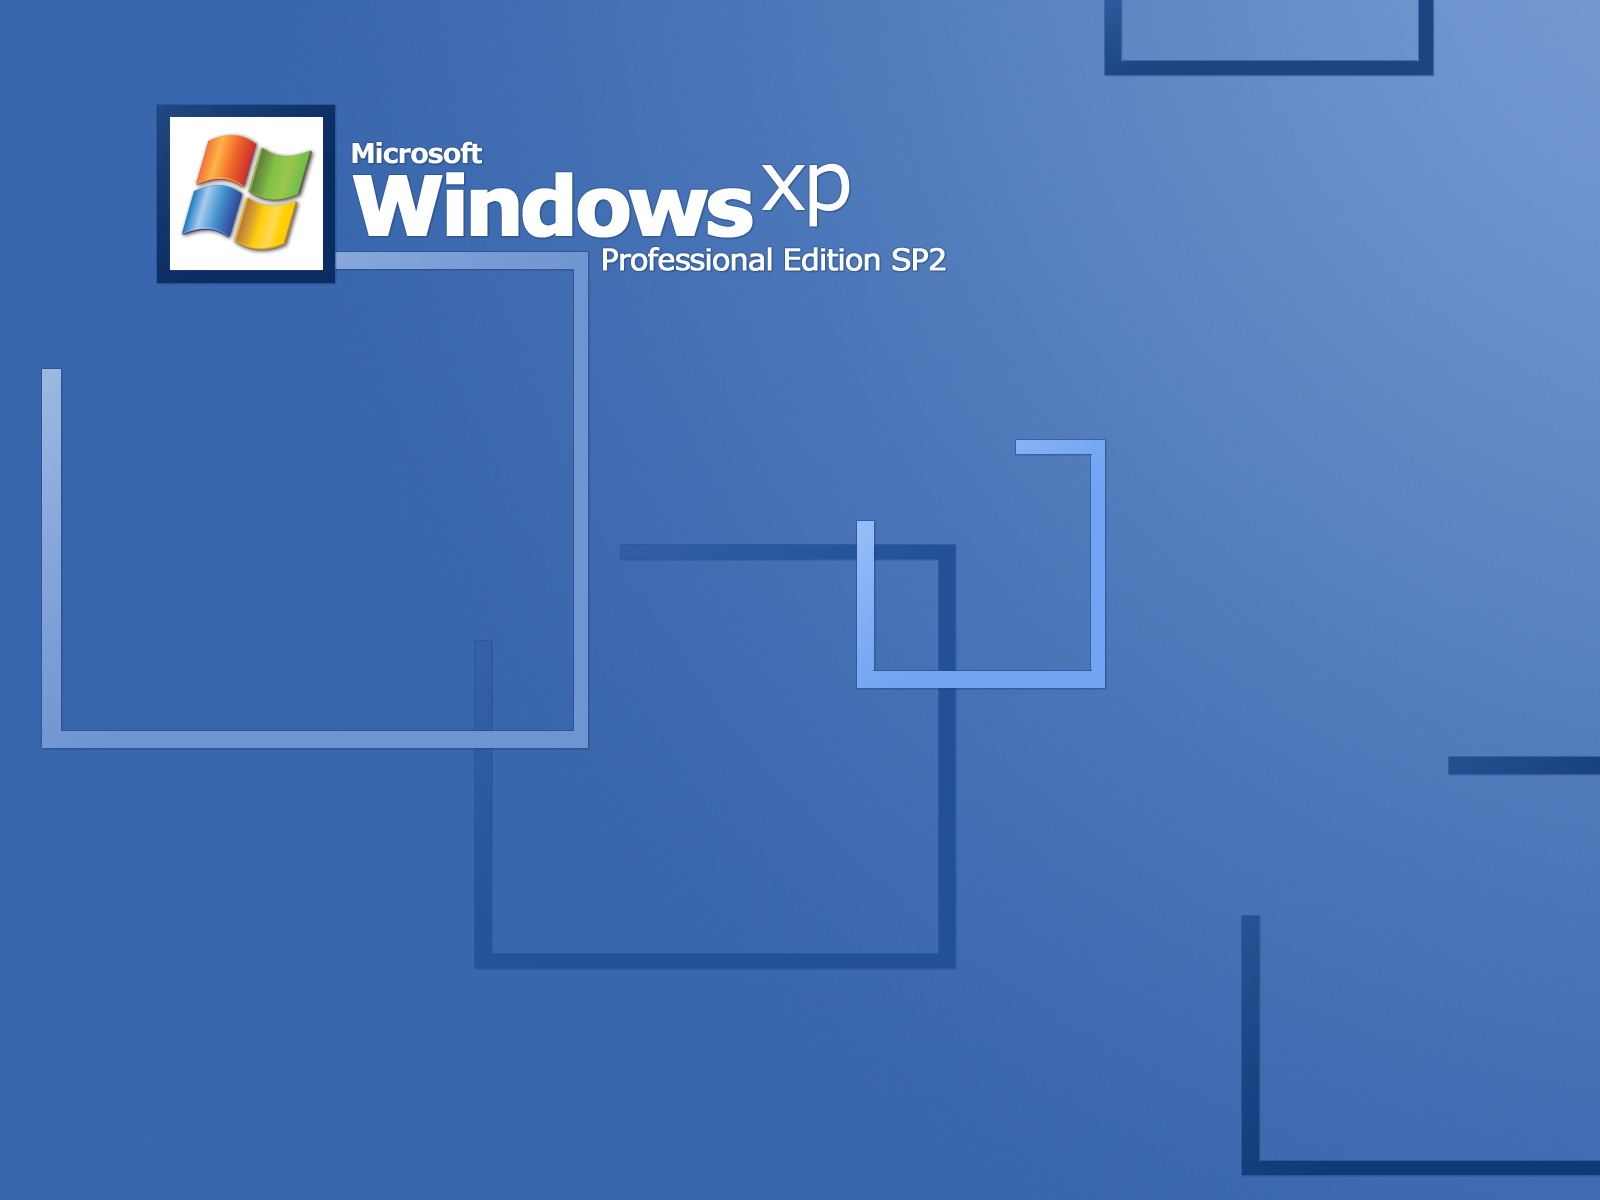 Cool Windows XP Wallpapers In HD For Free